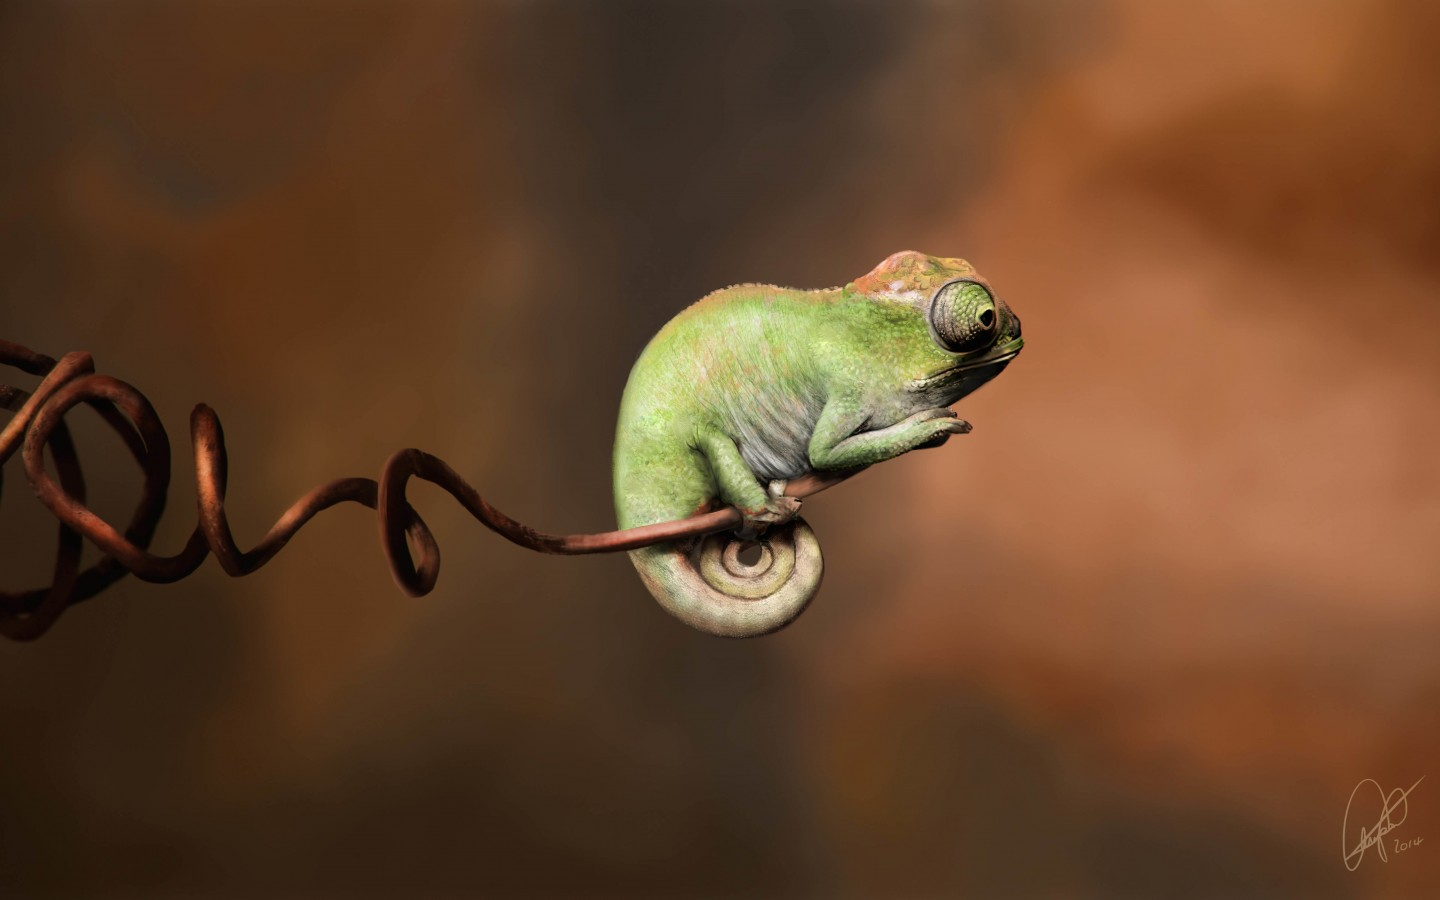 Baby Chameleon Perching On a Twisted Branch Wallpaper for Desktop 1440x900